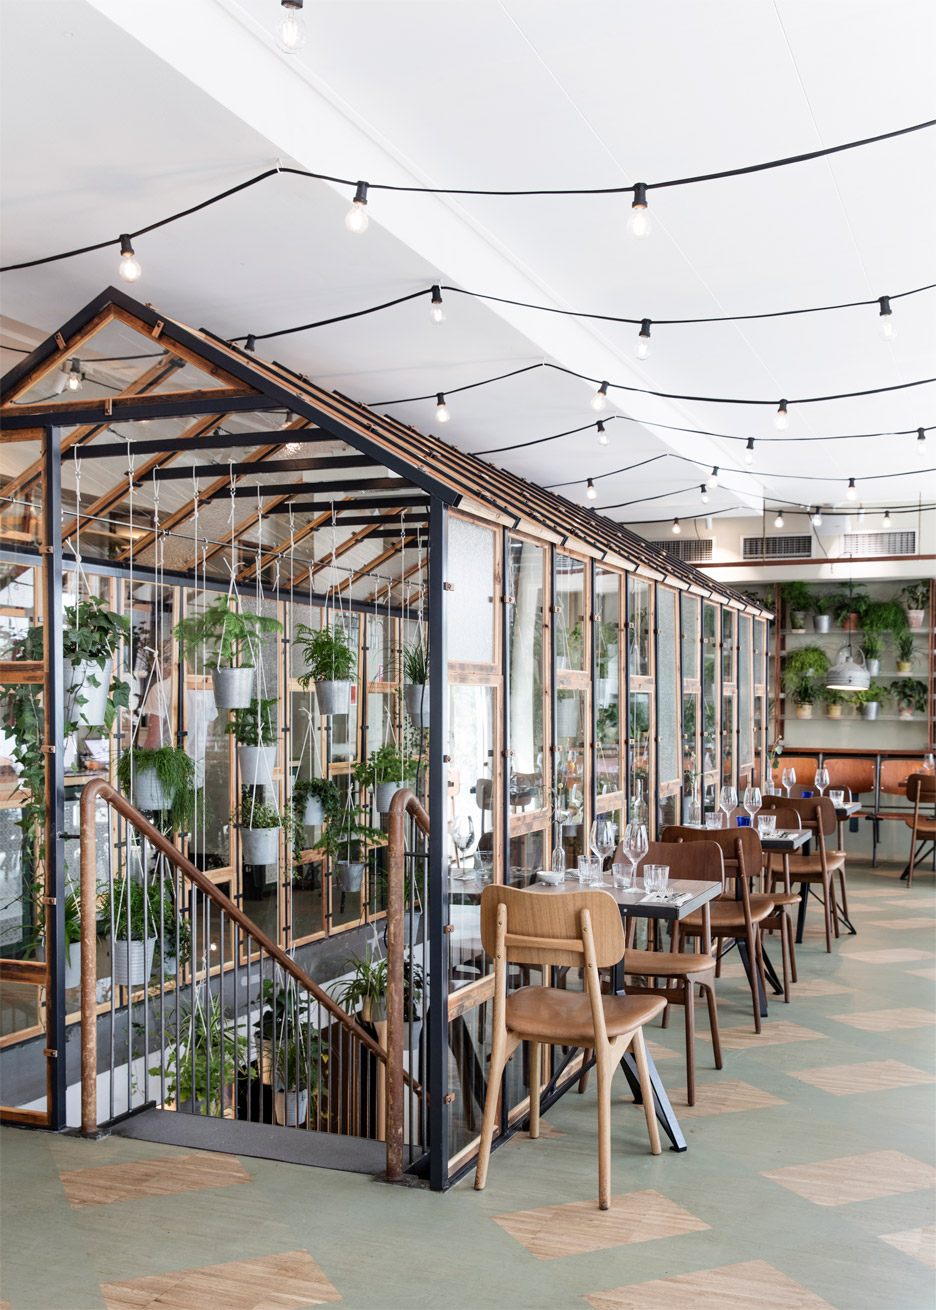 Danish Design Studio Creates an Indoor Garden For a Restaurant